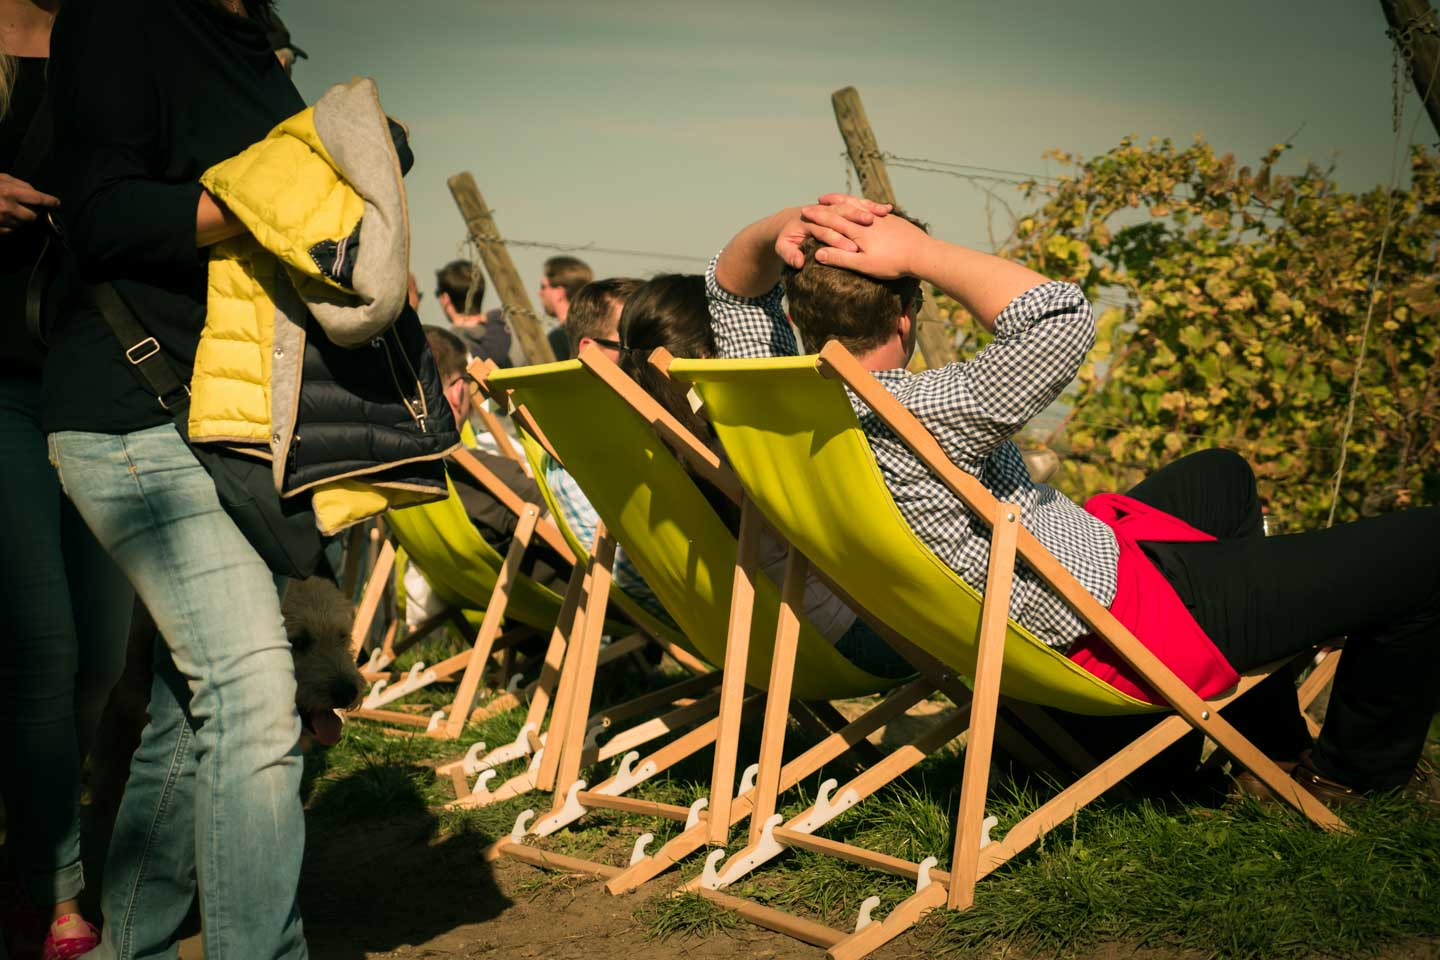 Sun bathing in the vineyards of Oppenheim during the Schlemmerwanderung 2015